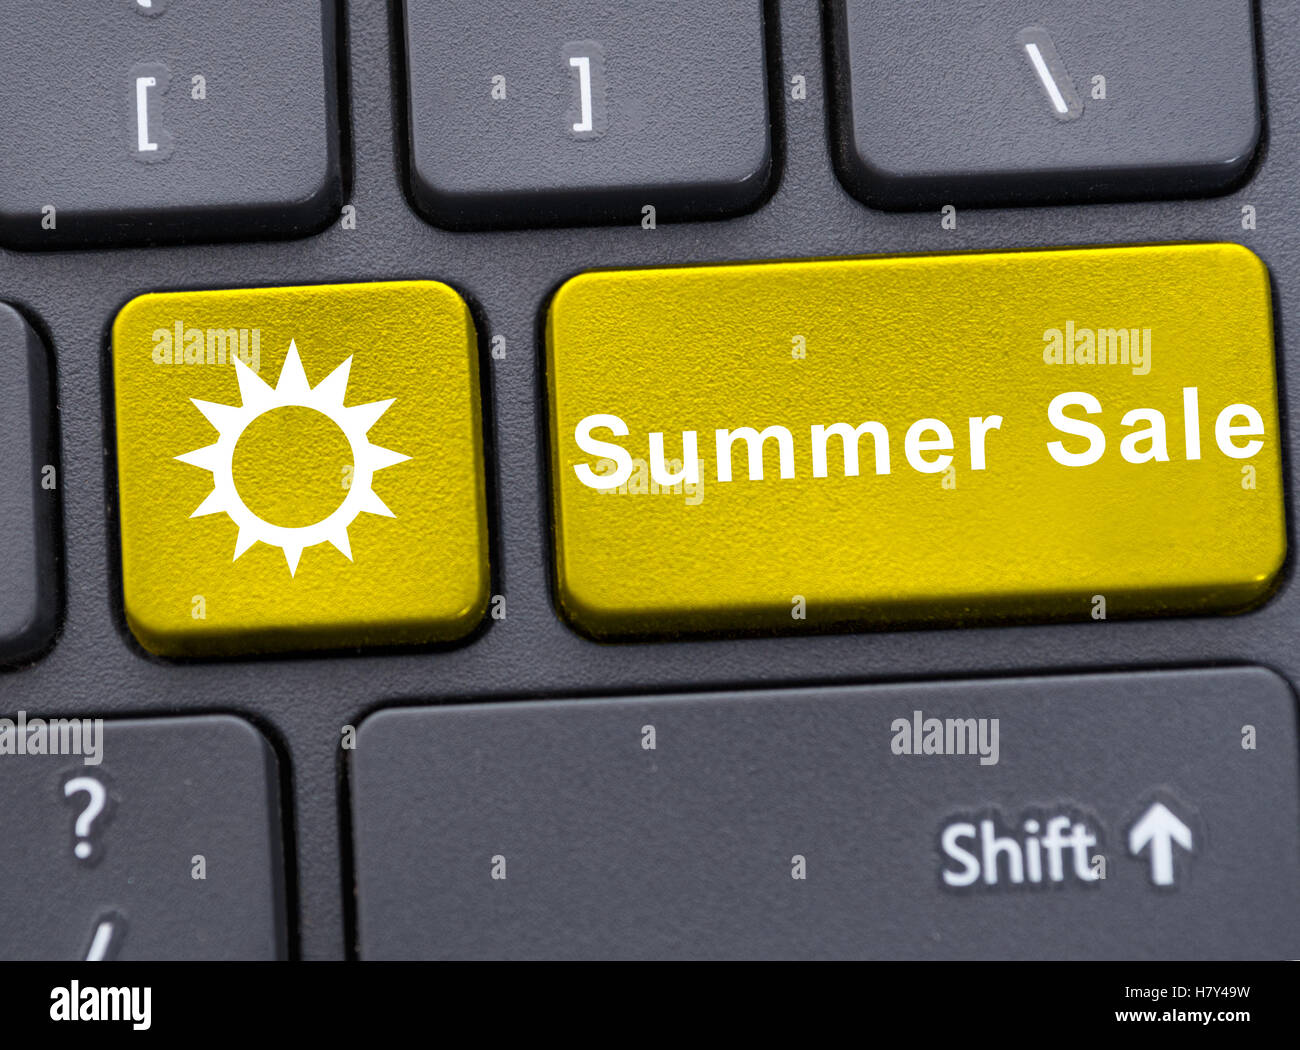 Computer Keyboard In Close Up With Summer Sale Text And Sun Symbol